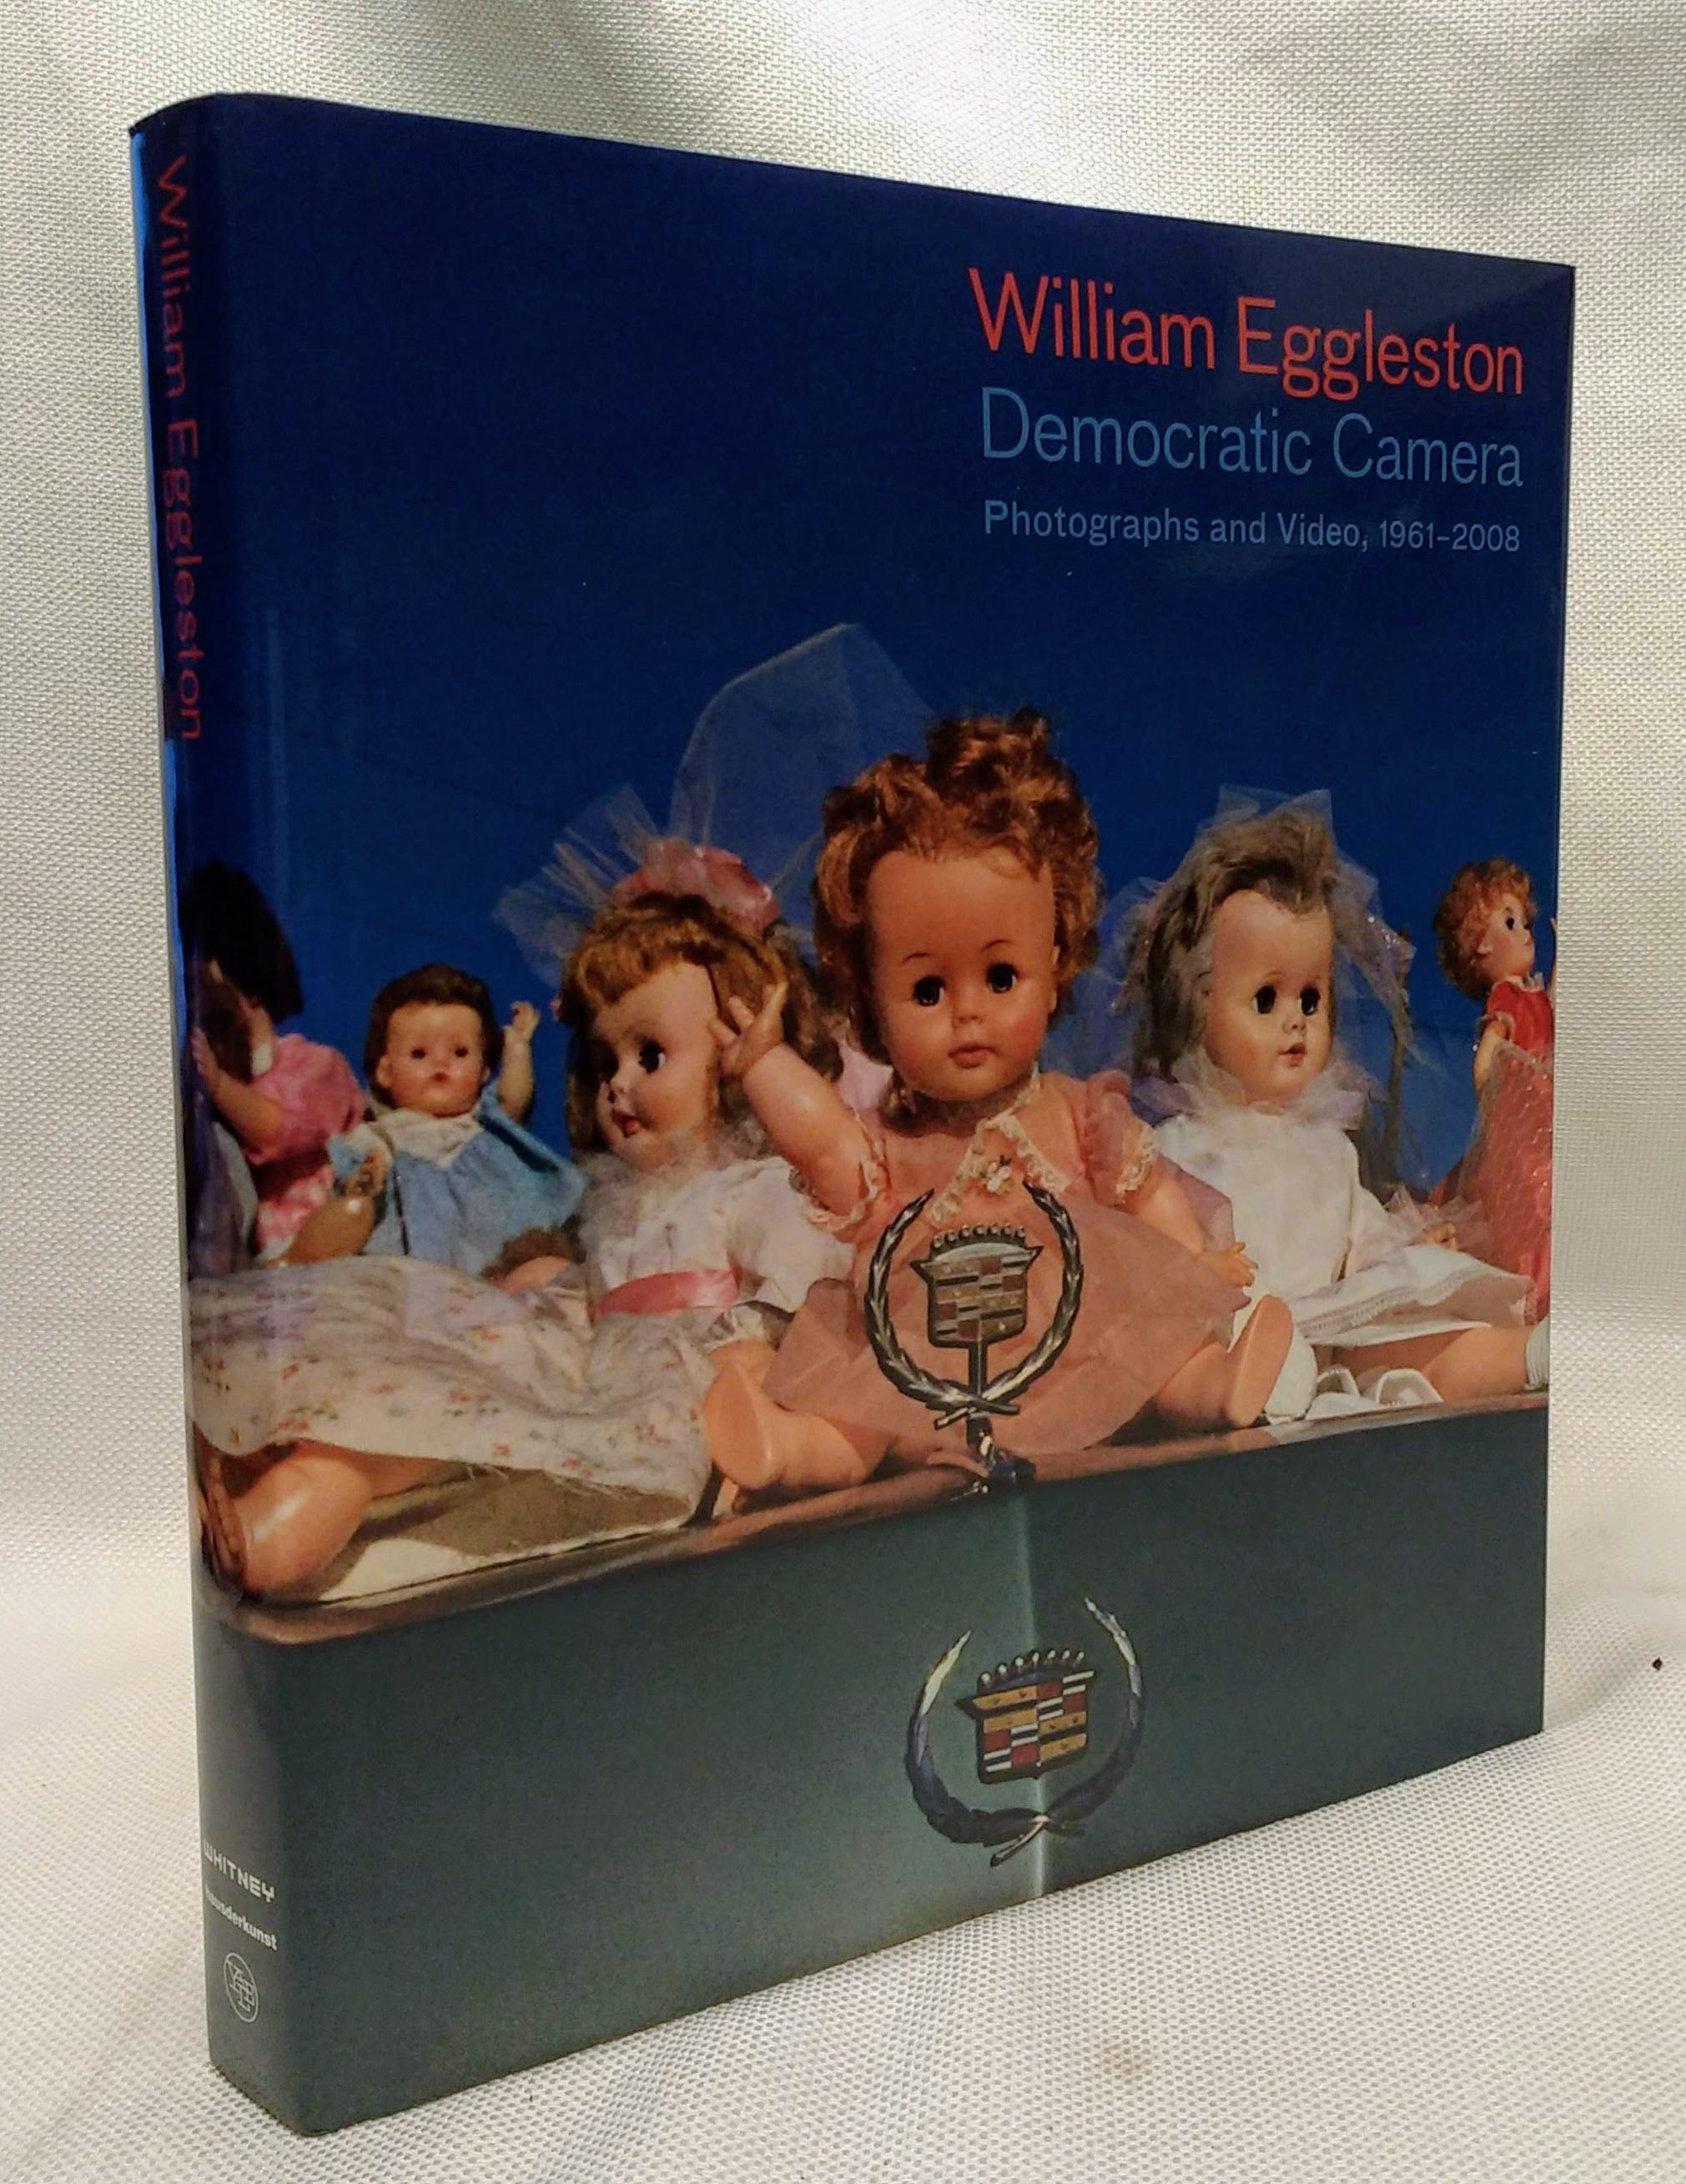 William Eggleston: Democratic Camera, Photographs and Video, 1961-2008 (Whitney Museum of American Art), Sussman, Elisabeth; Weski, Thomas; Kukielski, Tina [Contributor]; De Salvo, Donna [Contributor]; Booth, Stanley [Contributor];